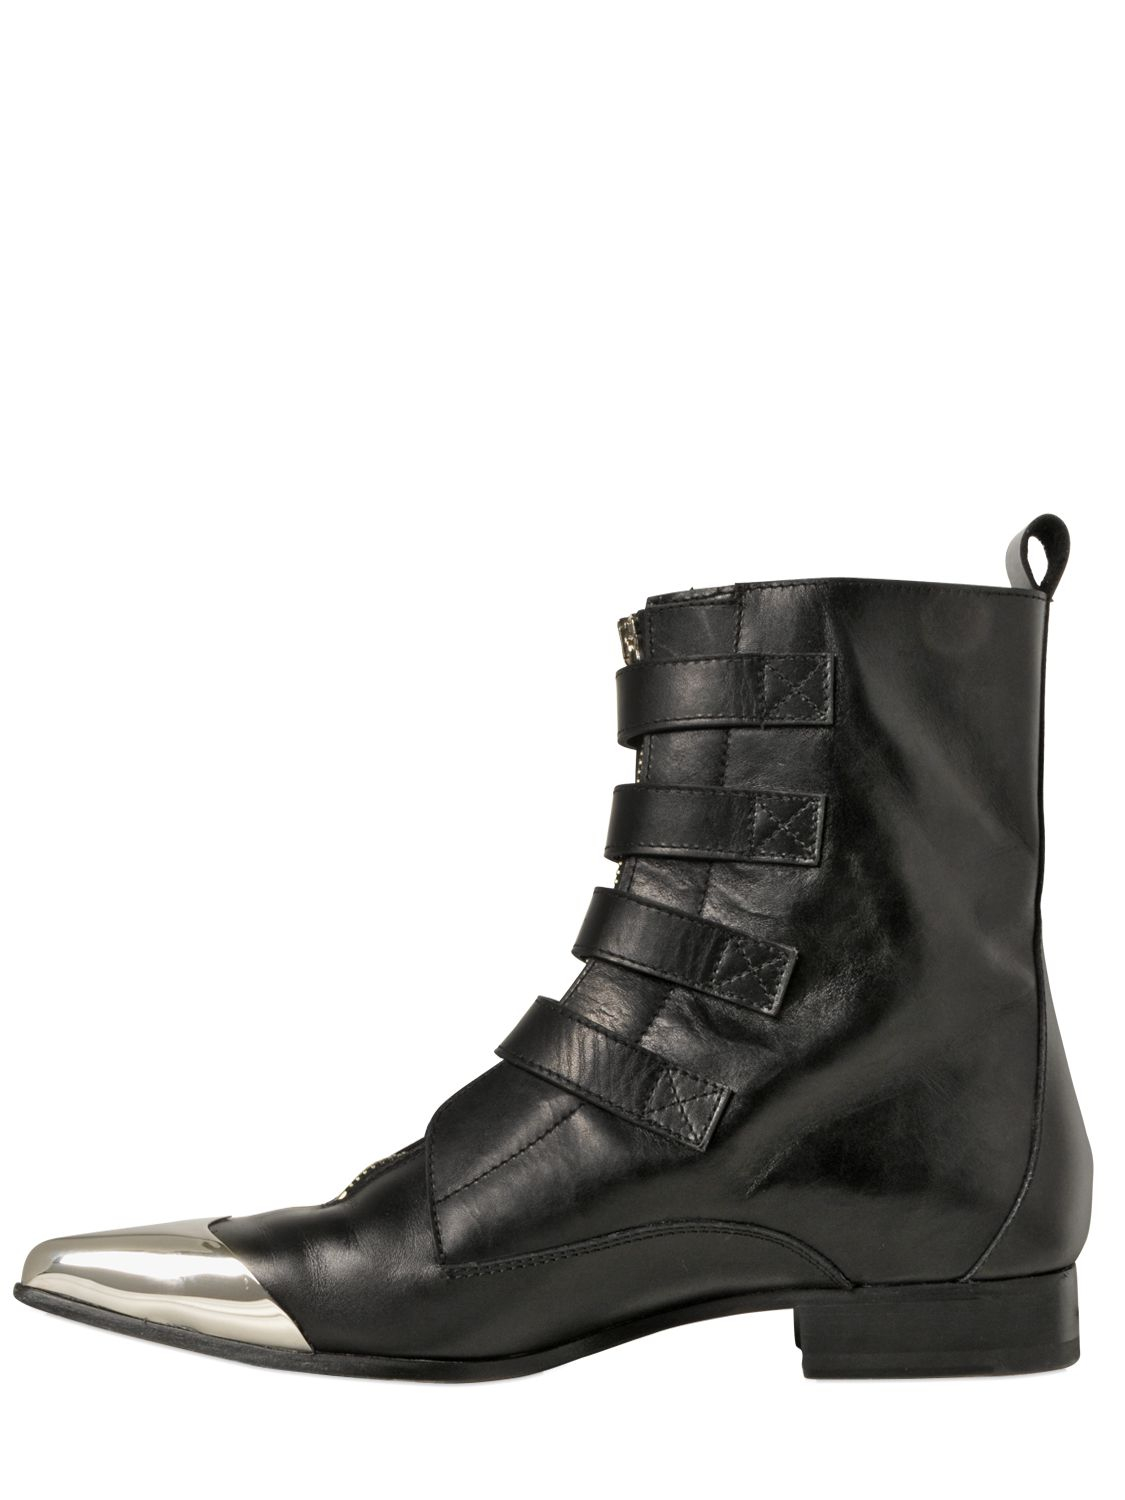 e31ddb3181649 Diesel Black Gold 25mm Metal Toe Leather Boots in Black - Lyst